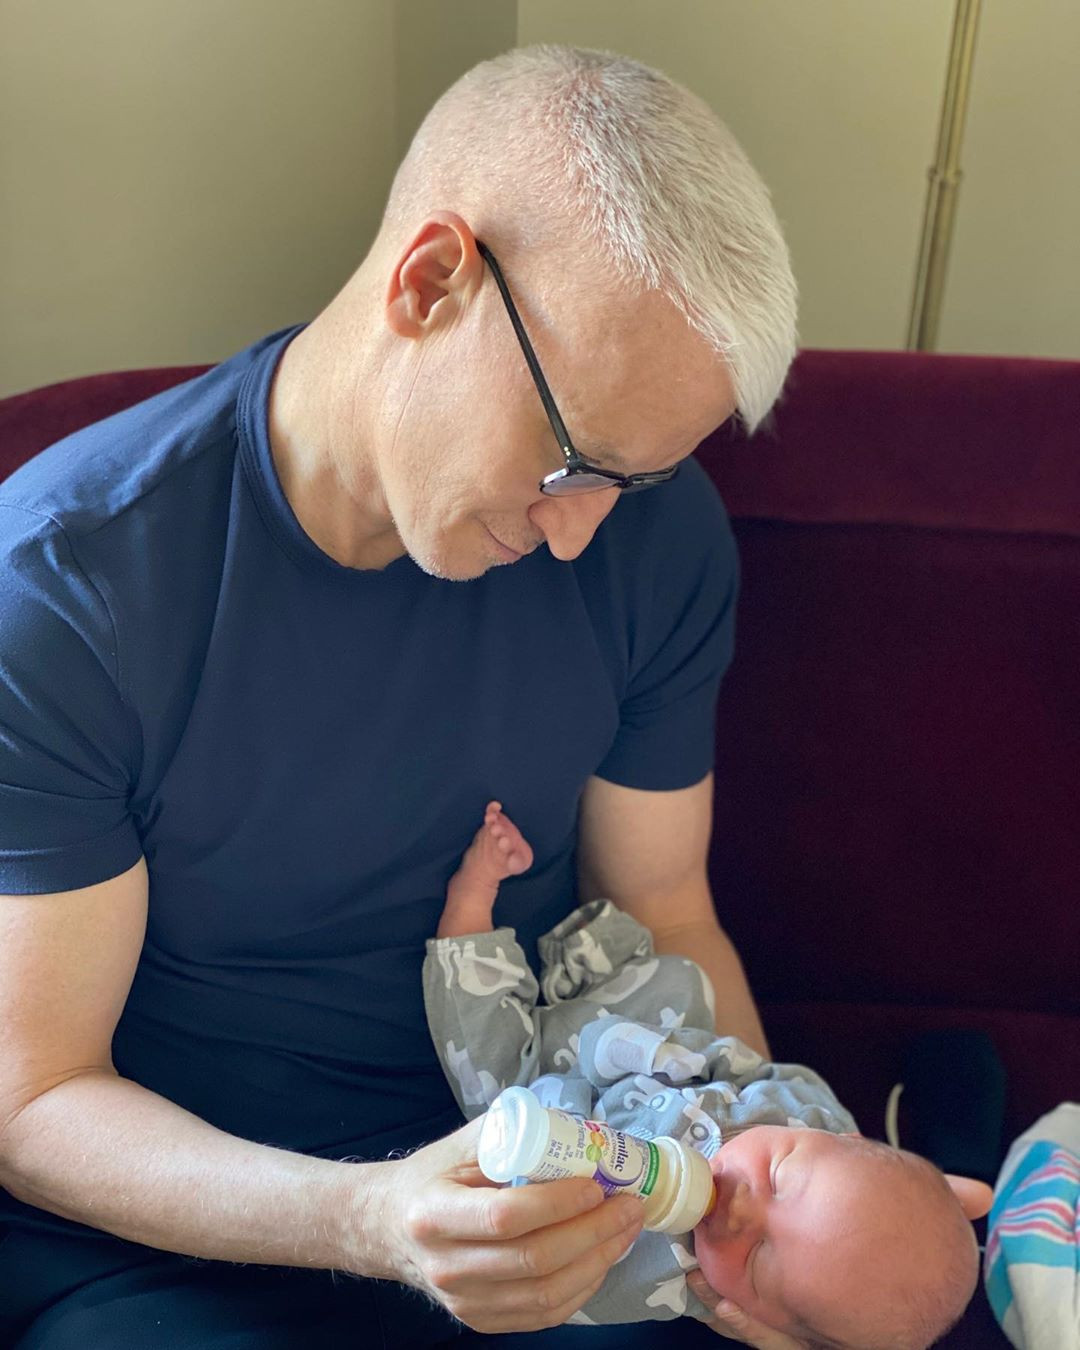 Anderson Cooper and his baby boy